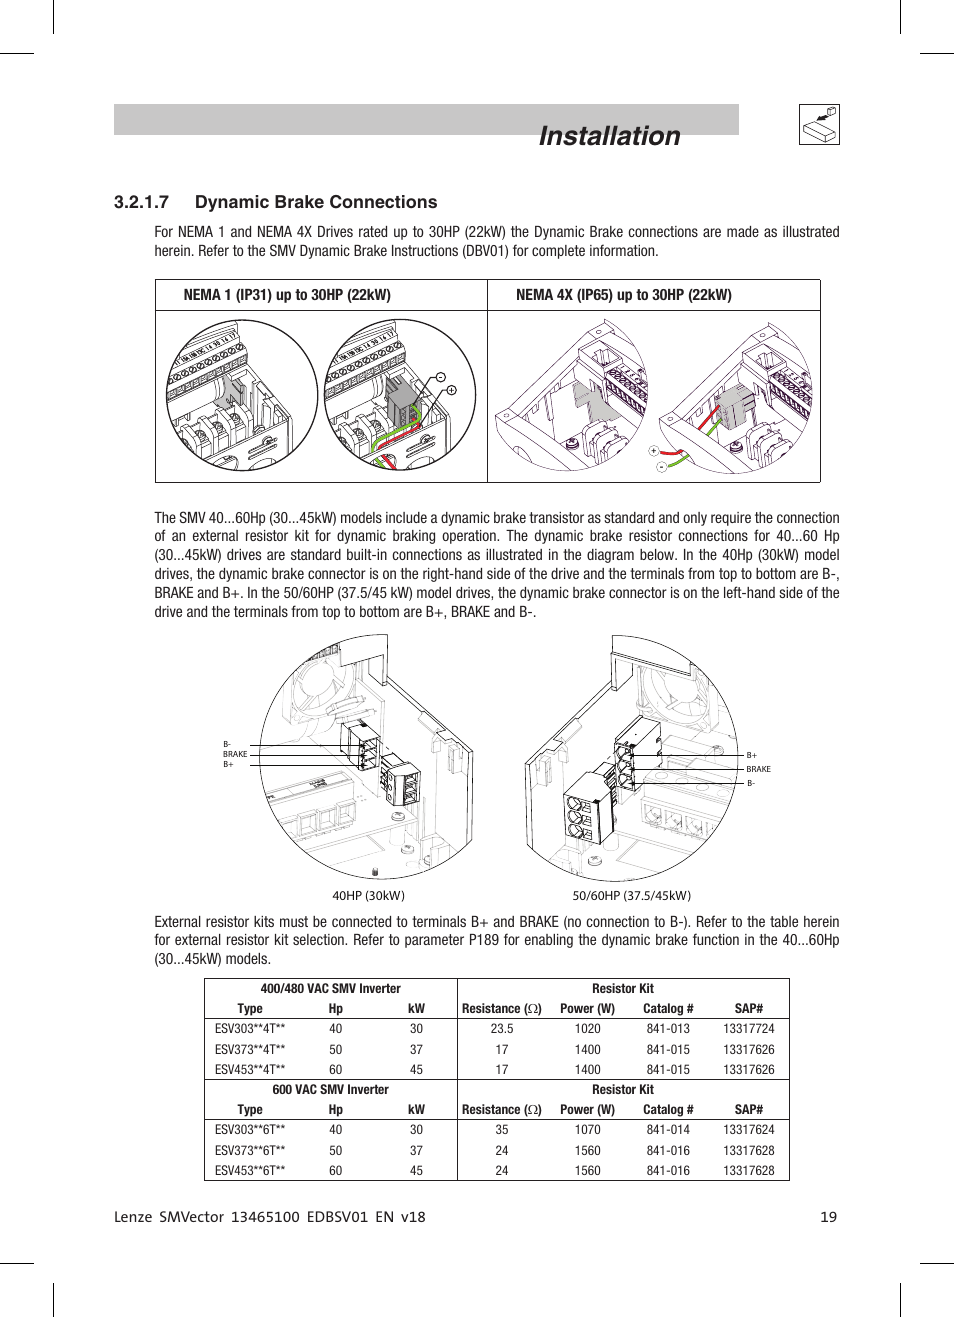 medium resolution of installation 7 dynamic brake connections lenze esv smv frequency inverter user manual page 21 66